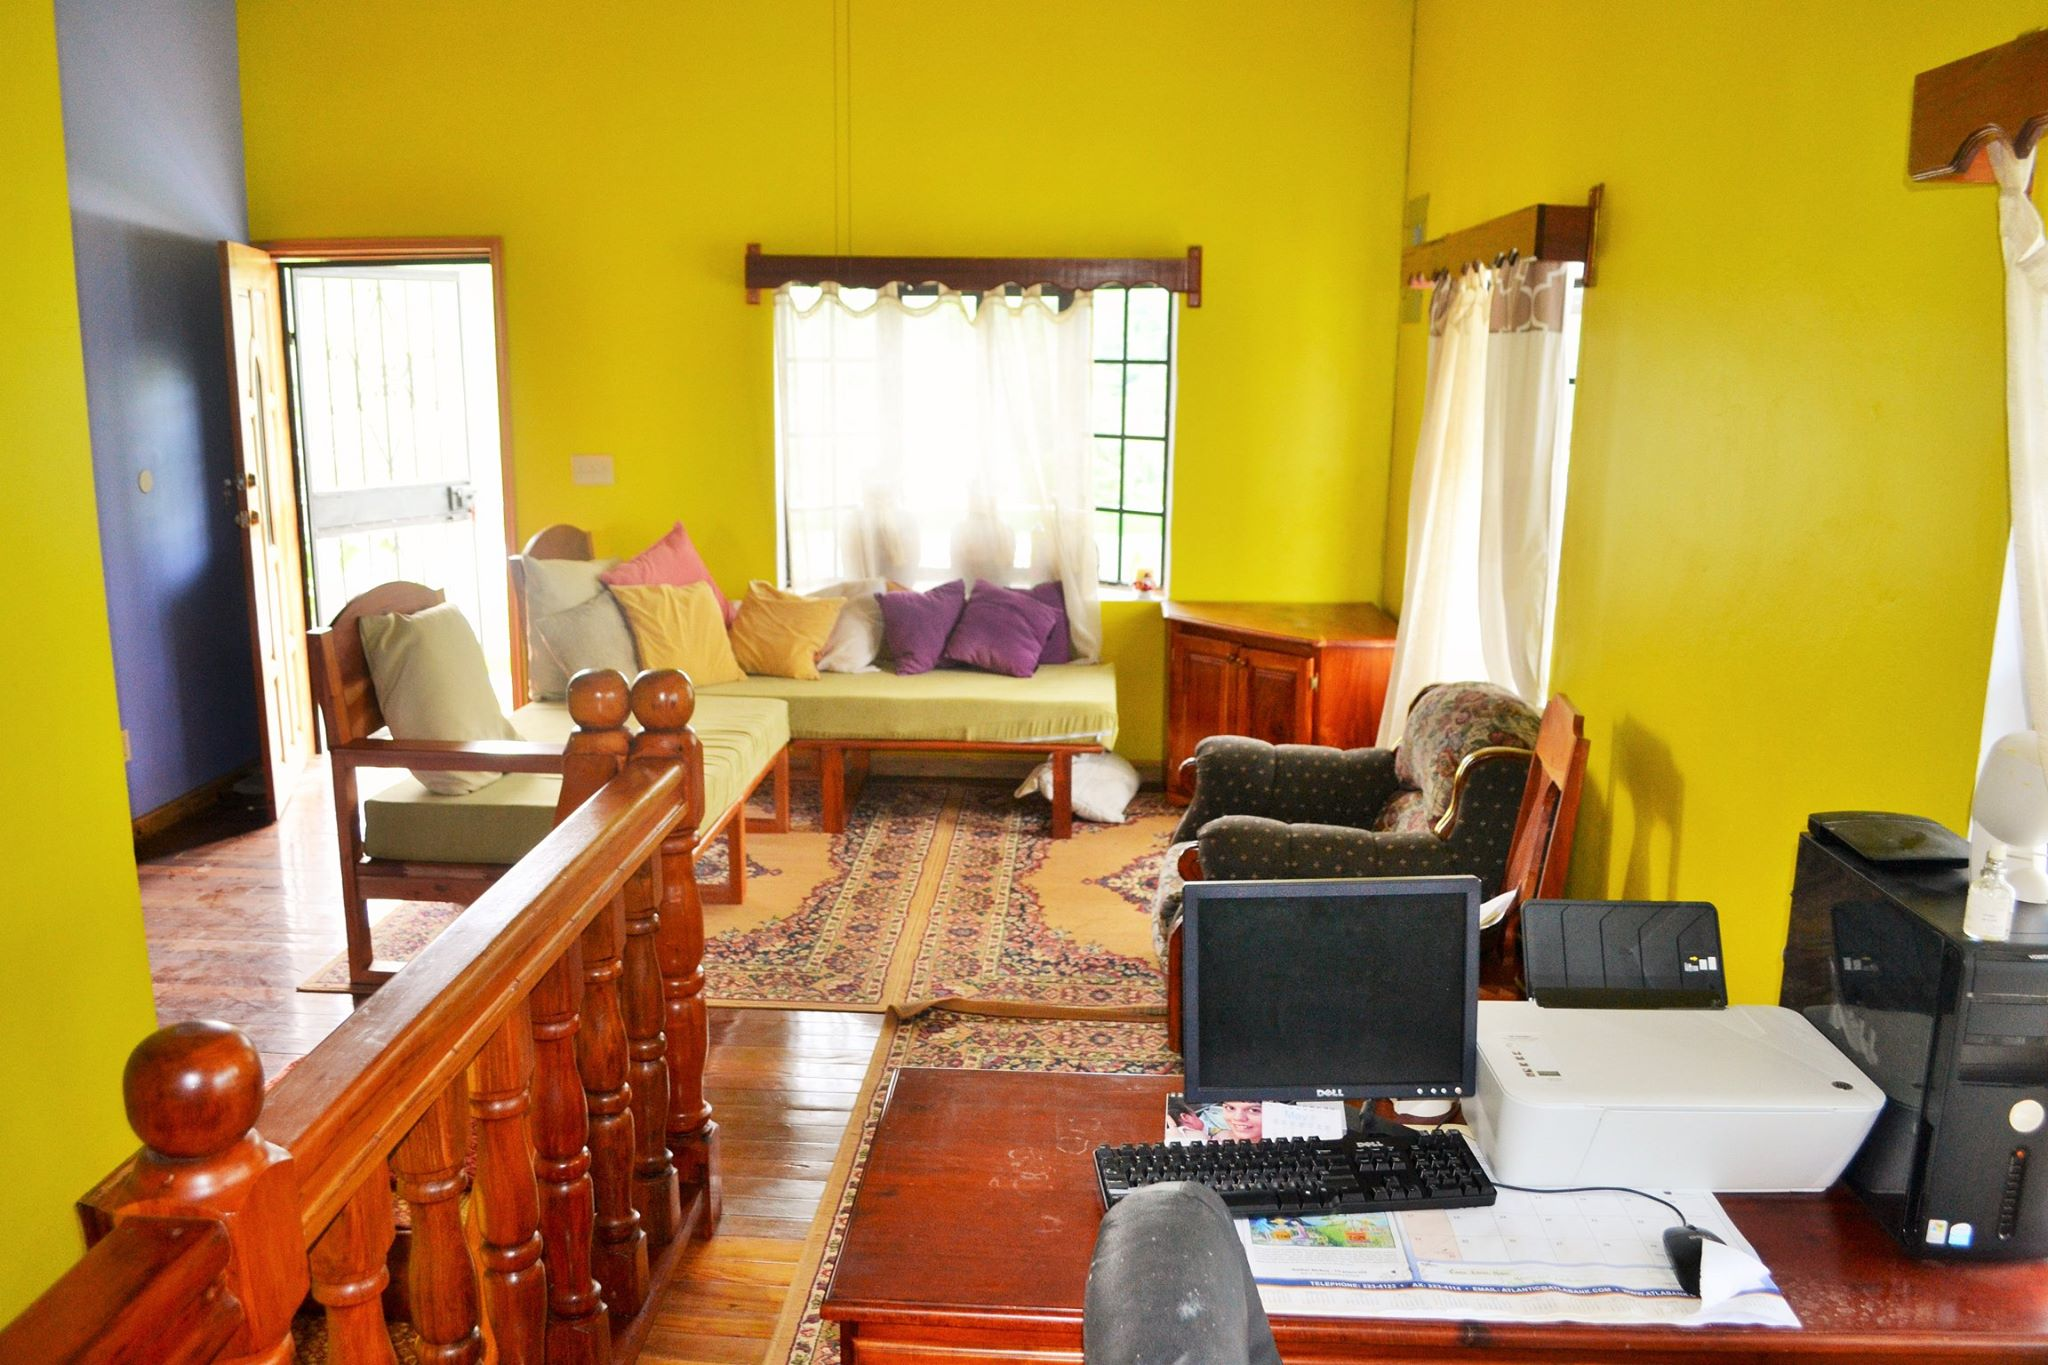 6 bedroom fully furnished house